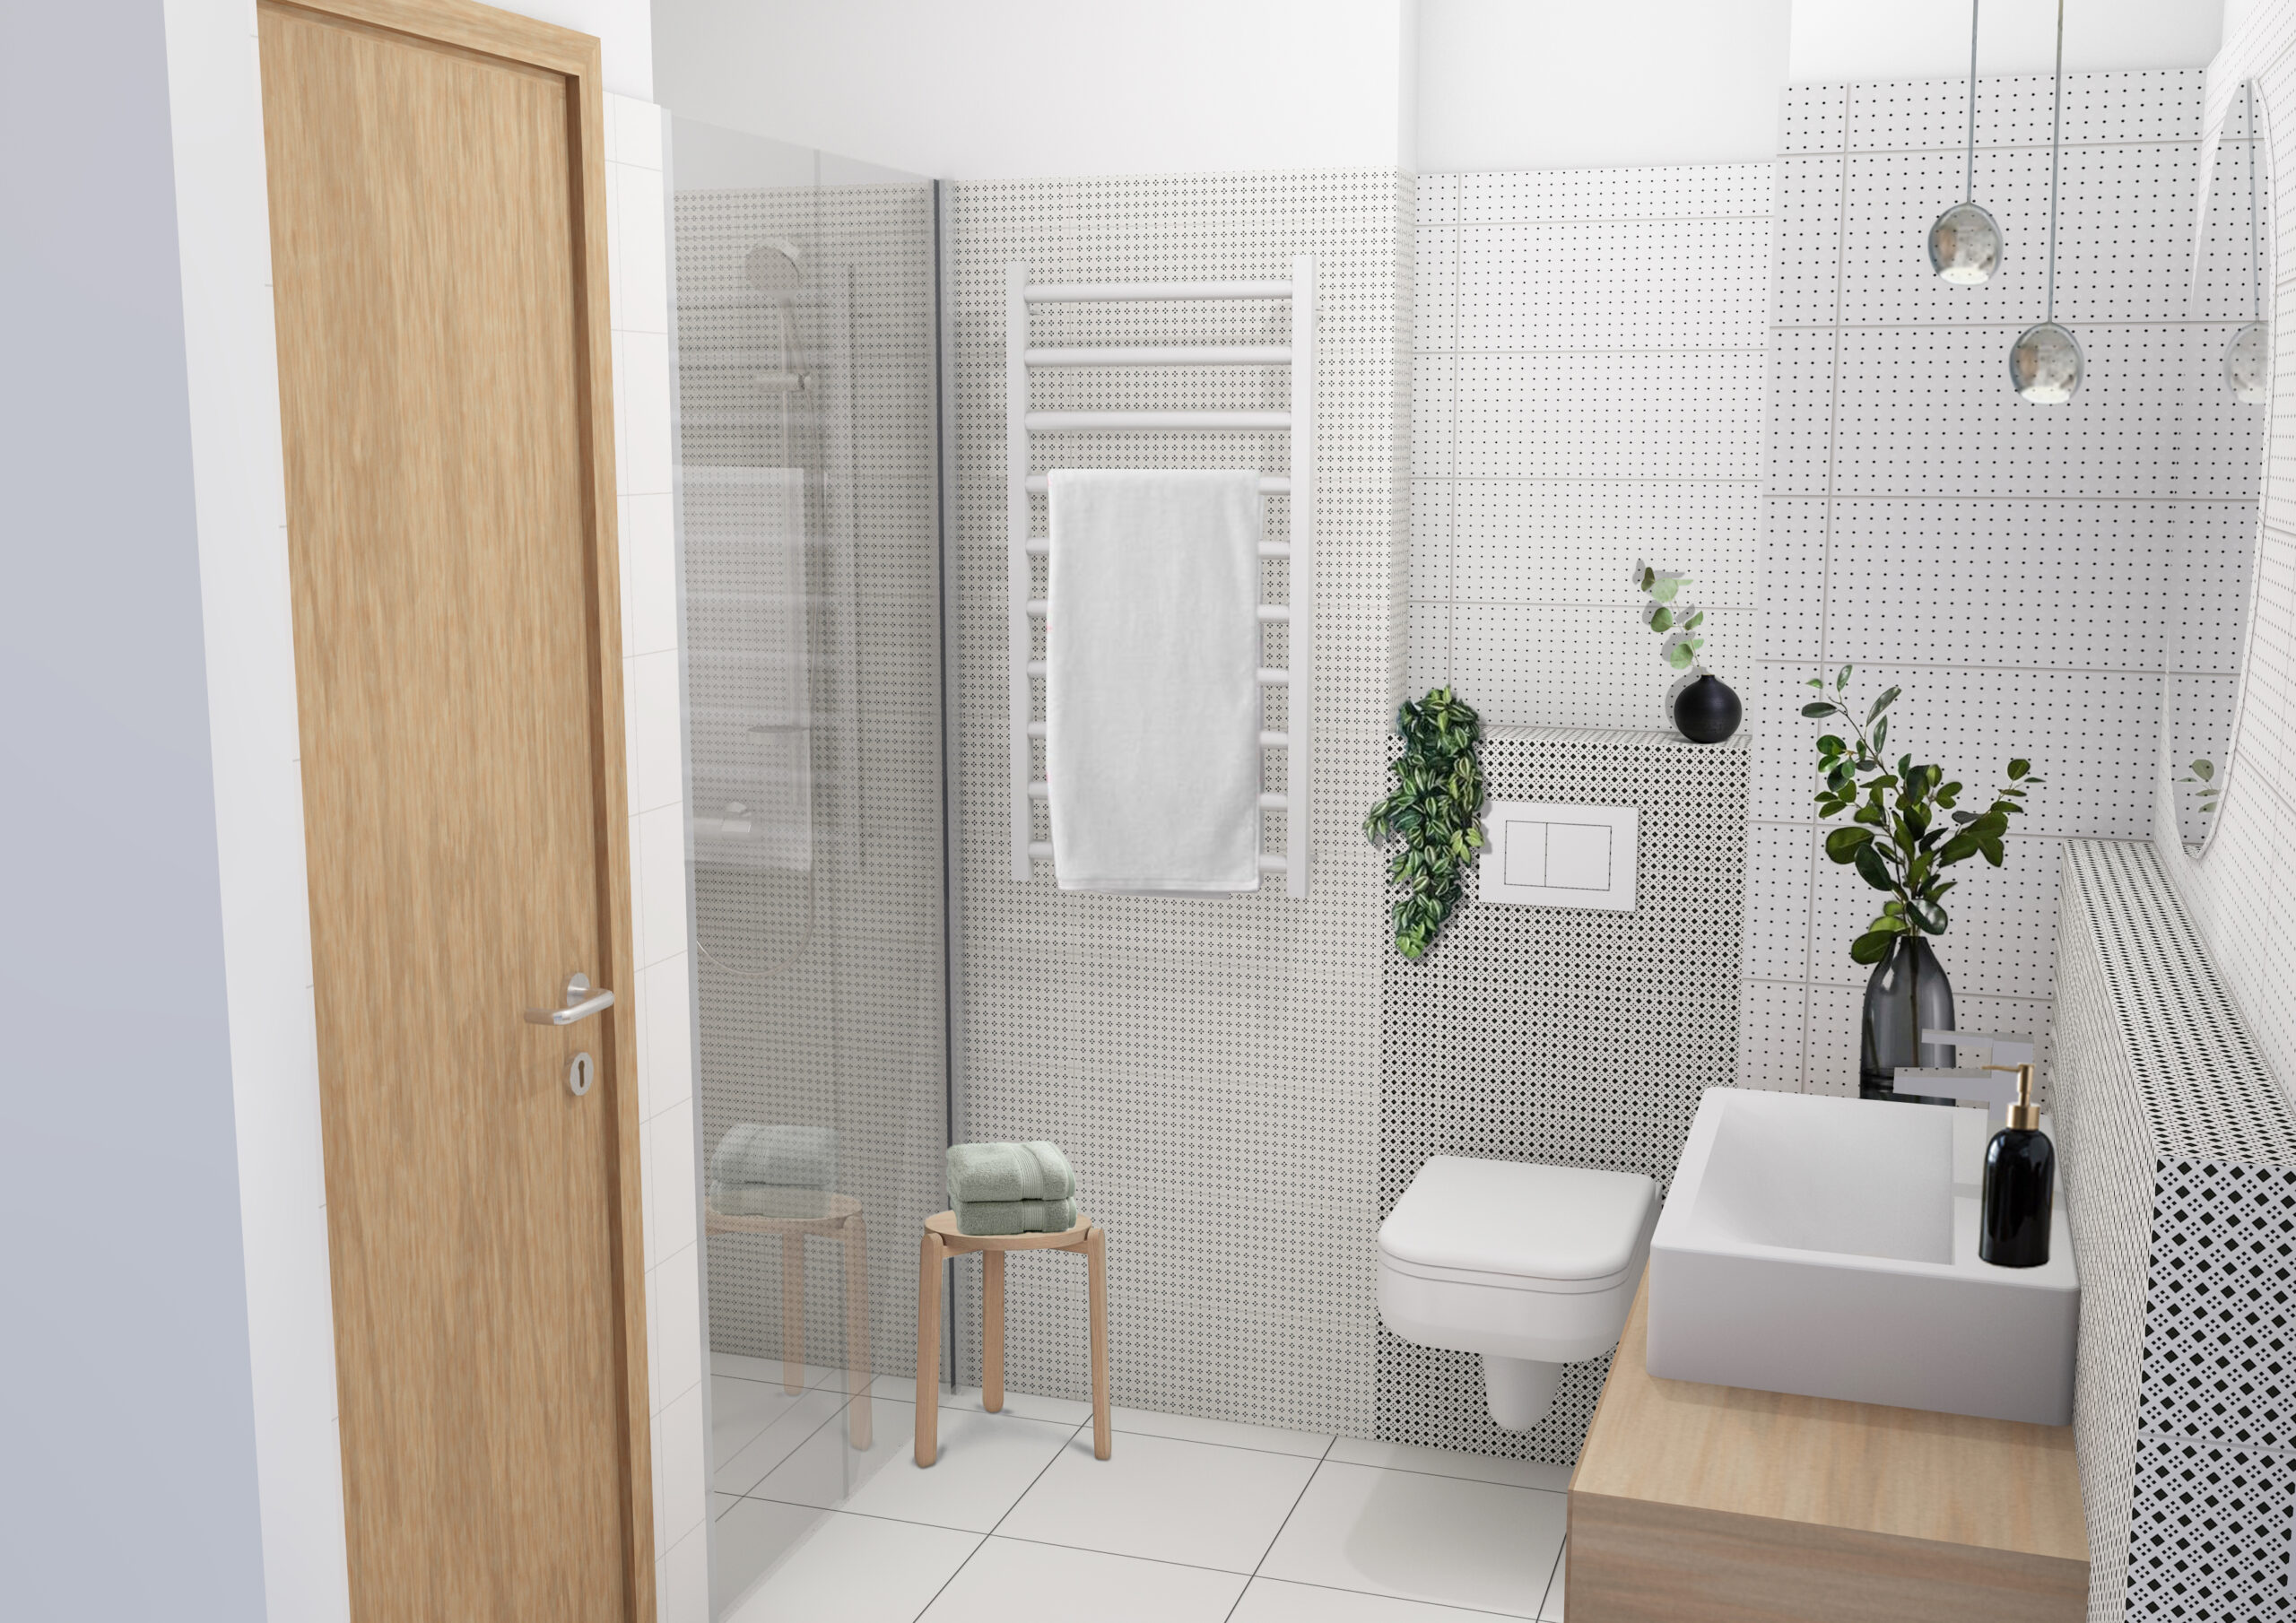 Marone House bathroom (Illustration)